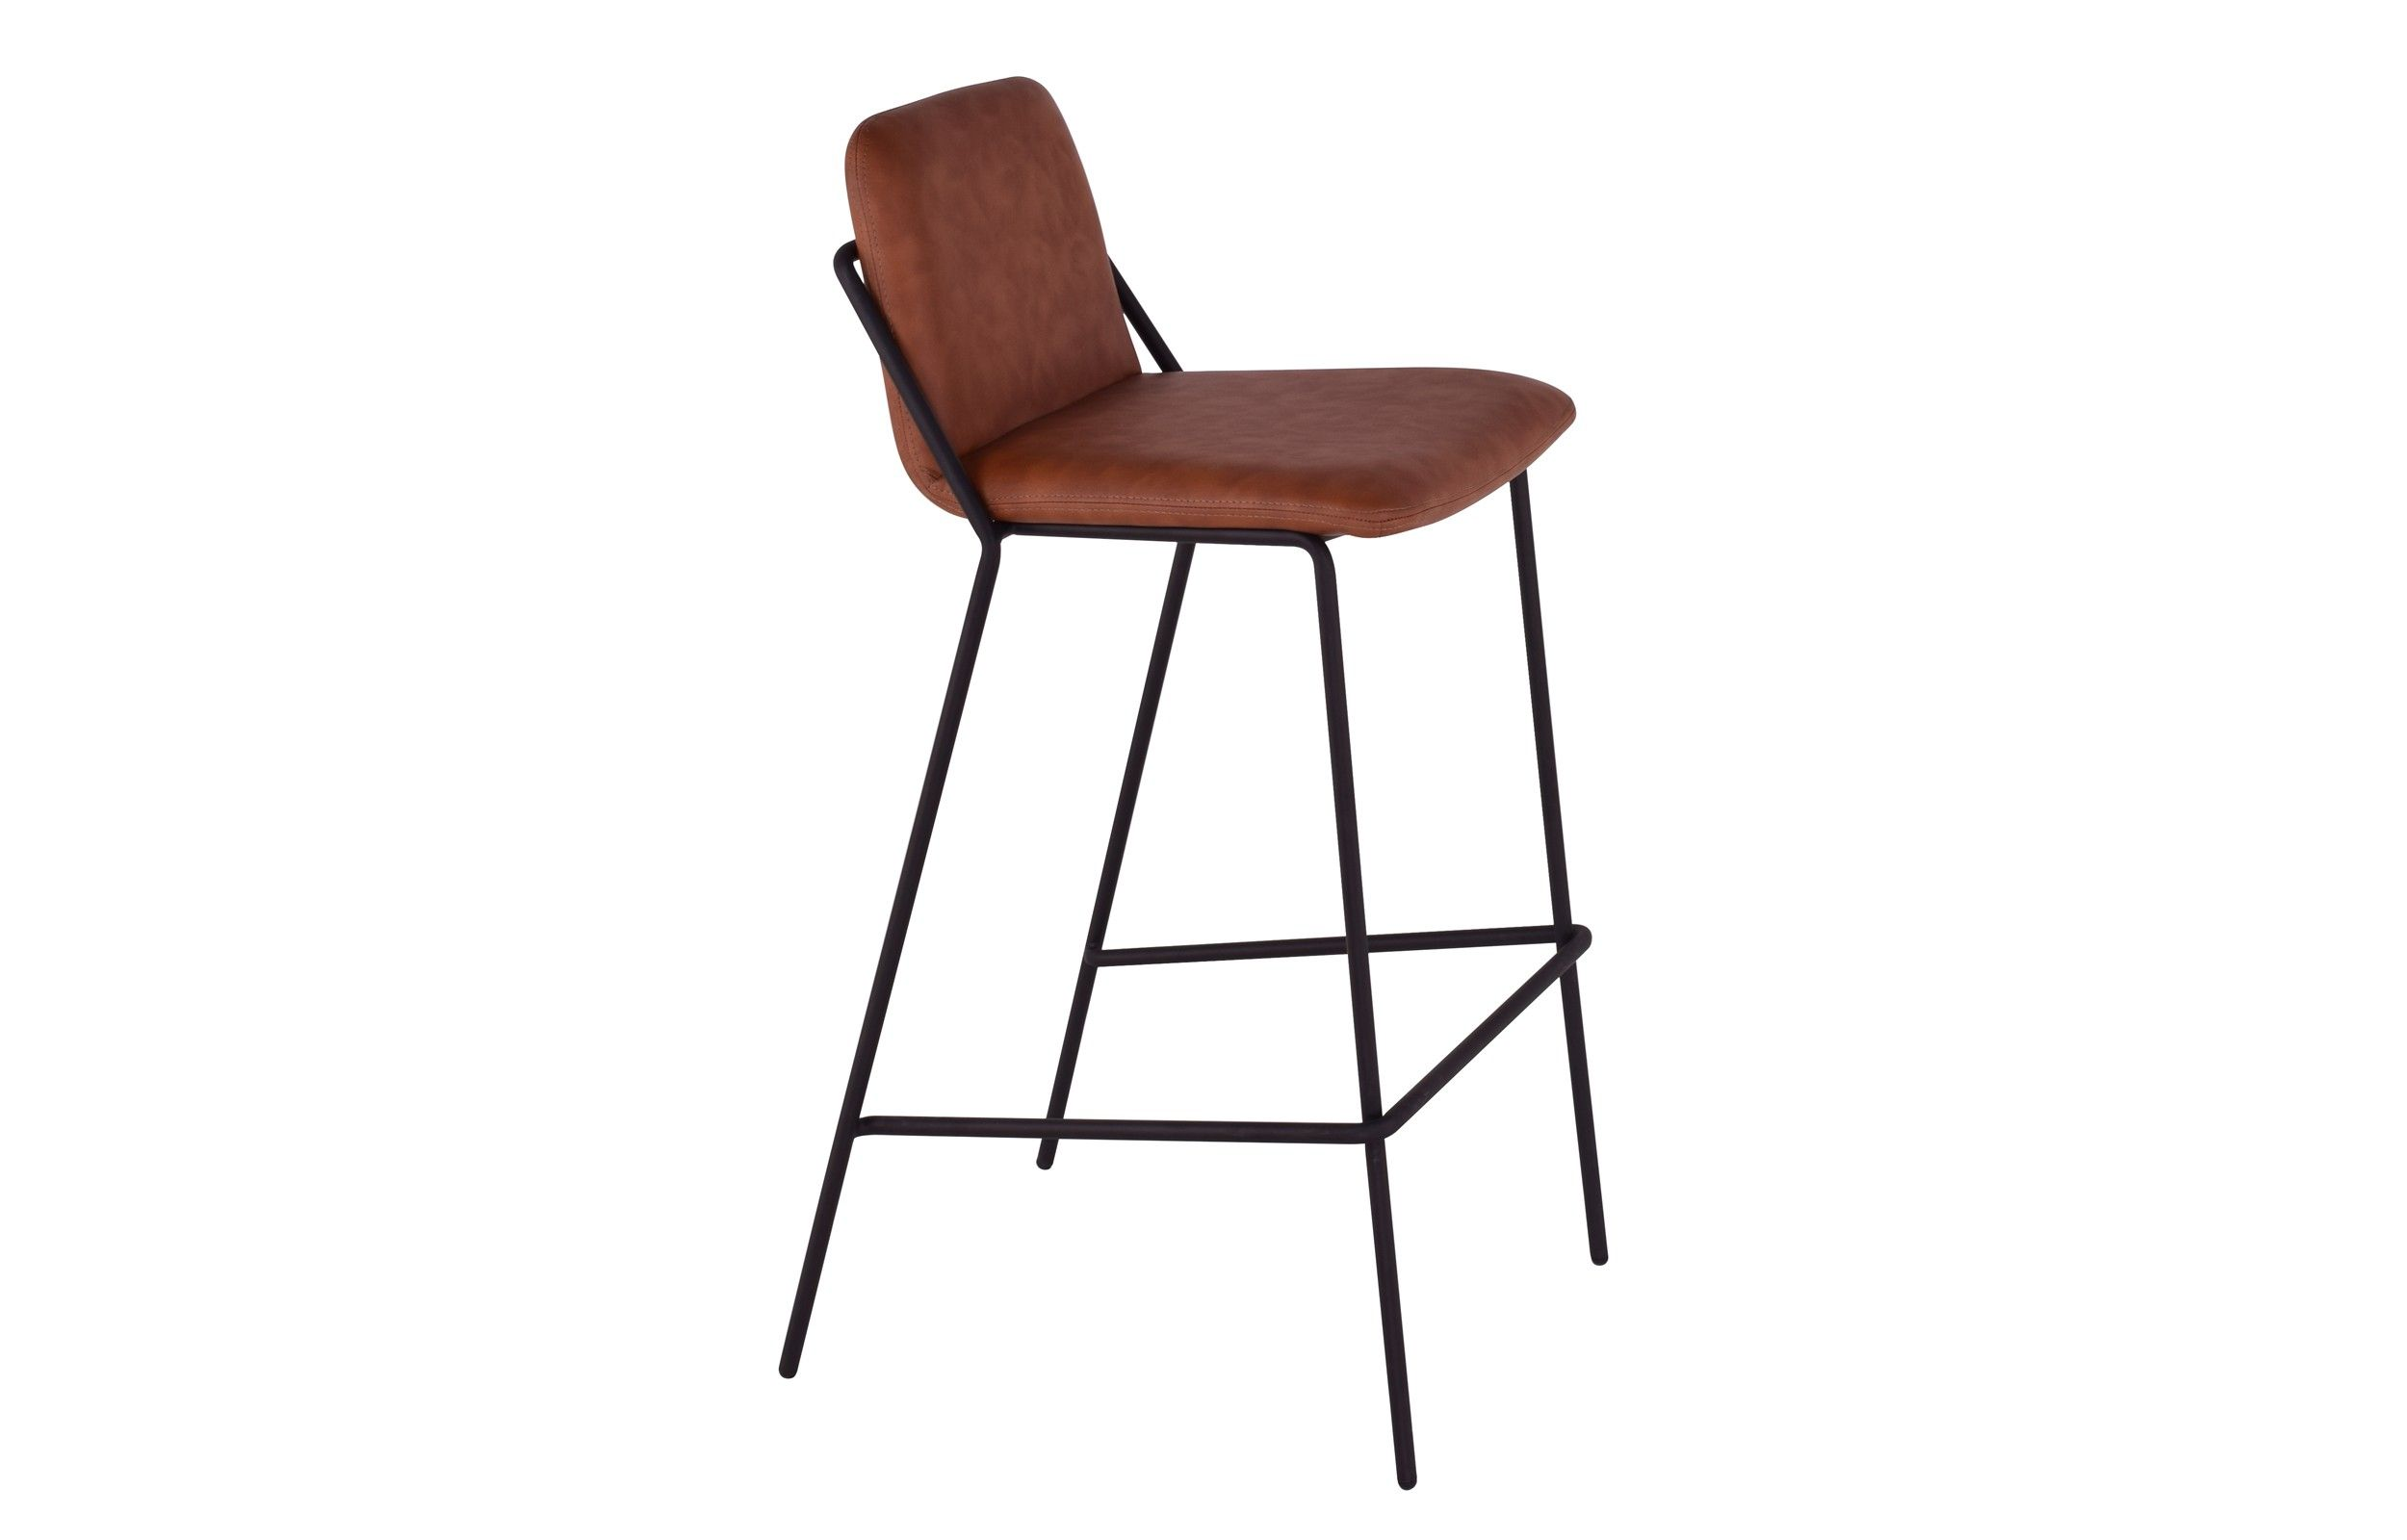 The Sling Bar Stool Upholstered Is Useful For The Outlet Theme Or Living  Spaces At Your Place. The Molded Plywood Stools Are Available With  Upholstered Seat ...